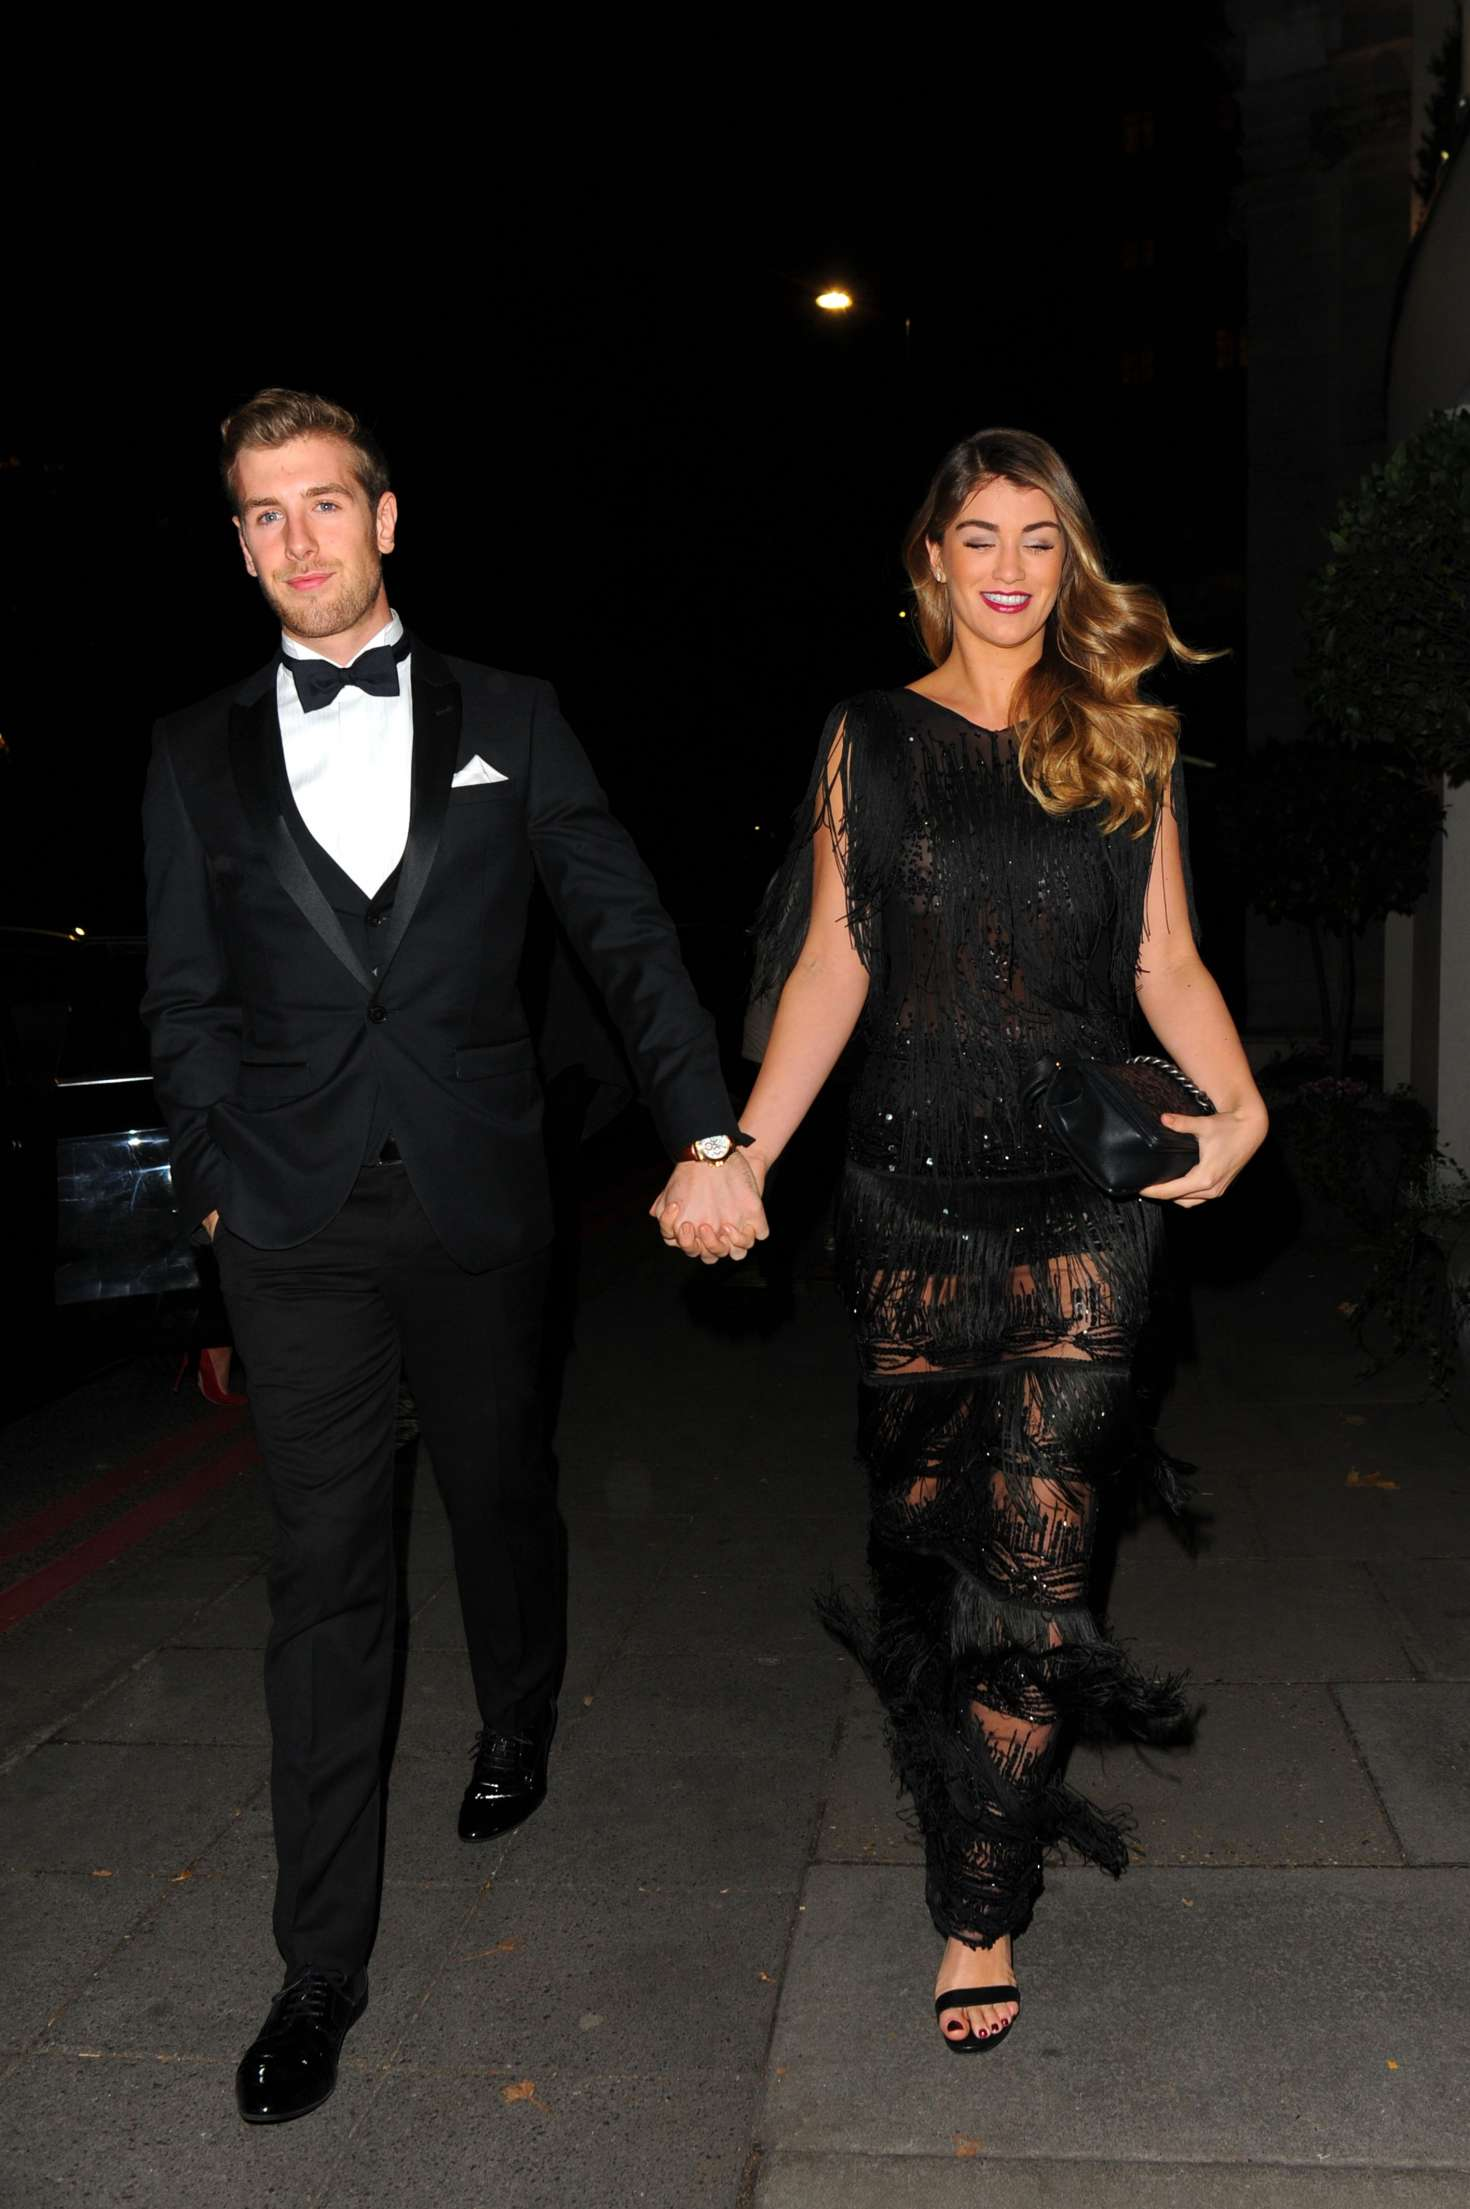 Amy Willerton 2016 : Amy Willerton: Chain Of Hope Annual Gala Ball 2016 -08